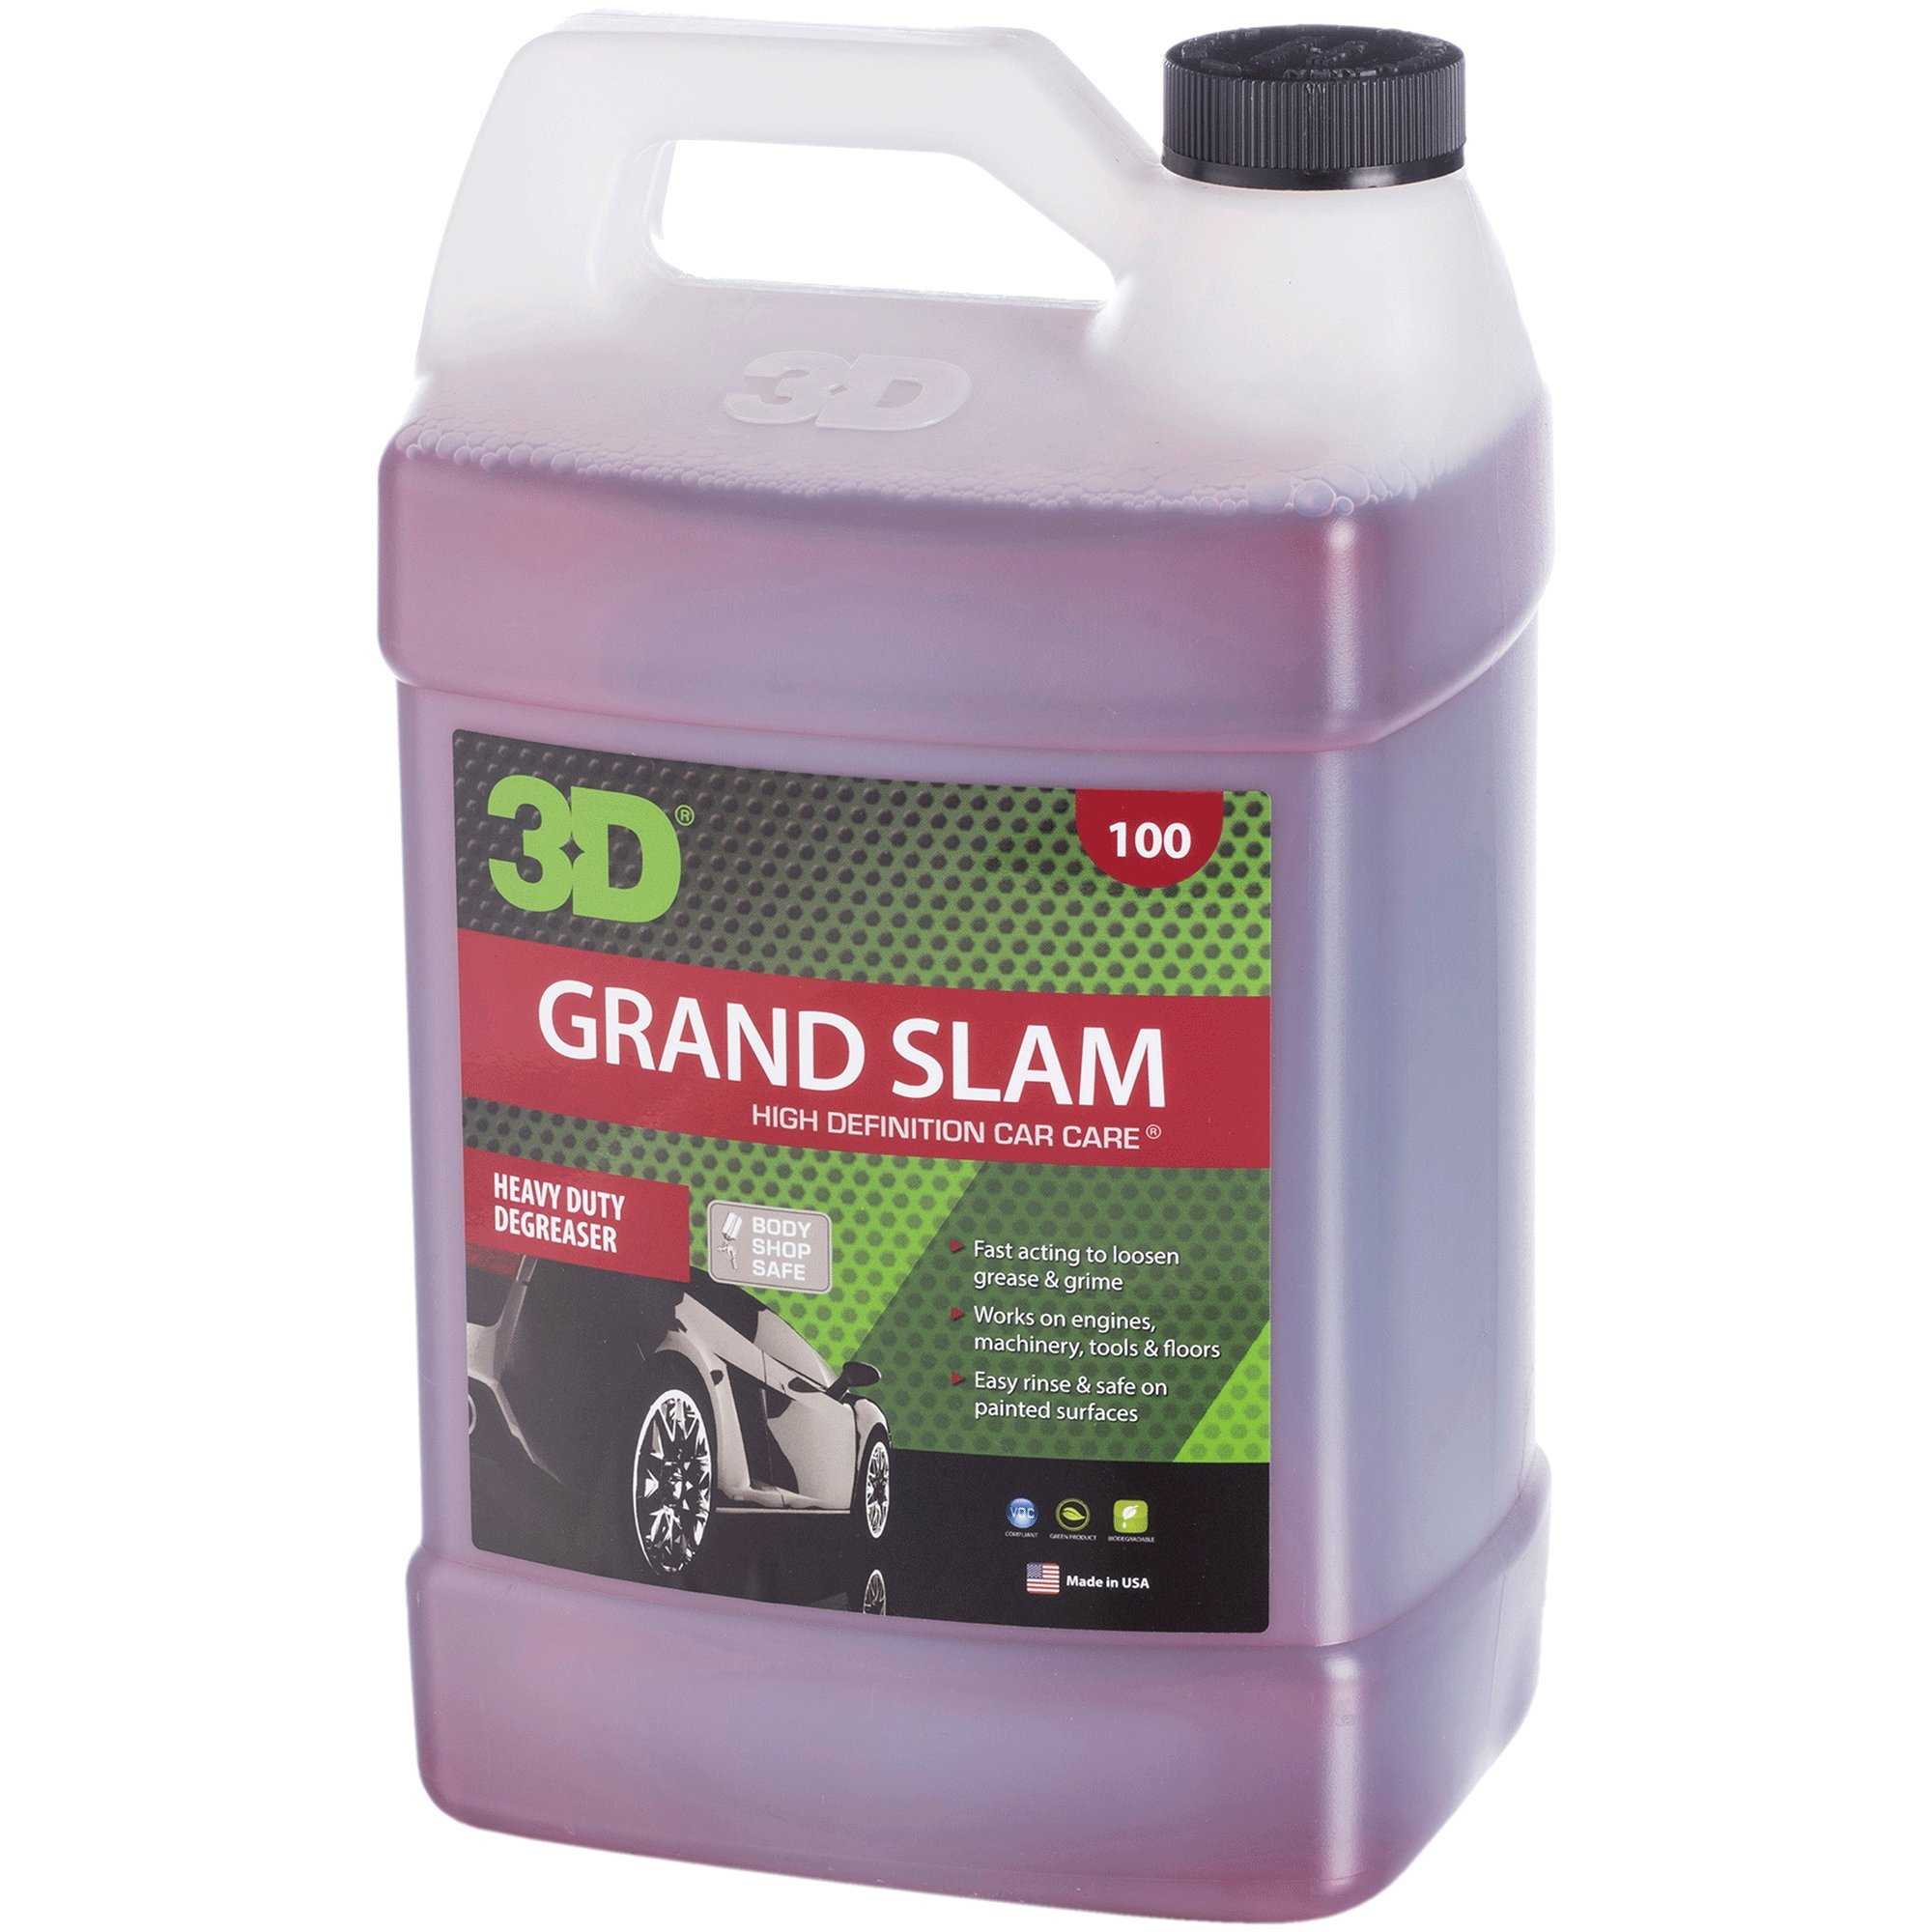 3D Grand Slam Engine Degreaser - 1 Gallon | Heavy Duty Industrial Cleaner & Degreaser | Removes Grease & Oil | Non Toxic & Biodegradable | Made in USA | All Natural | No Harmful Chemicals